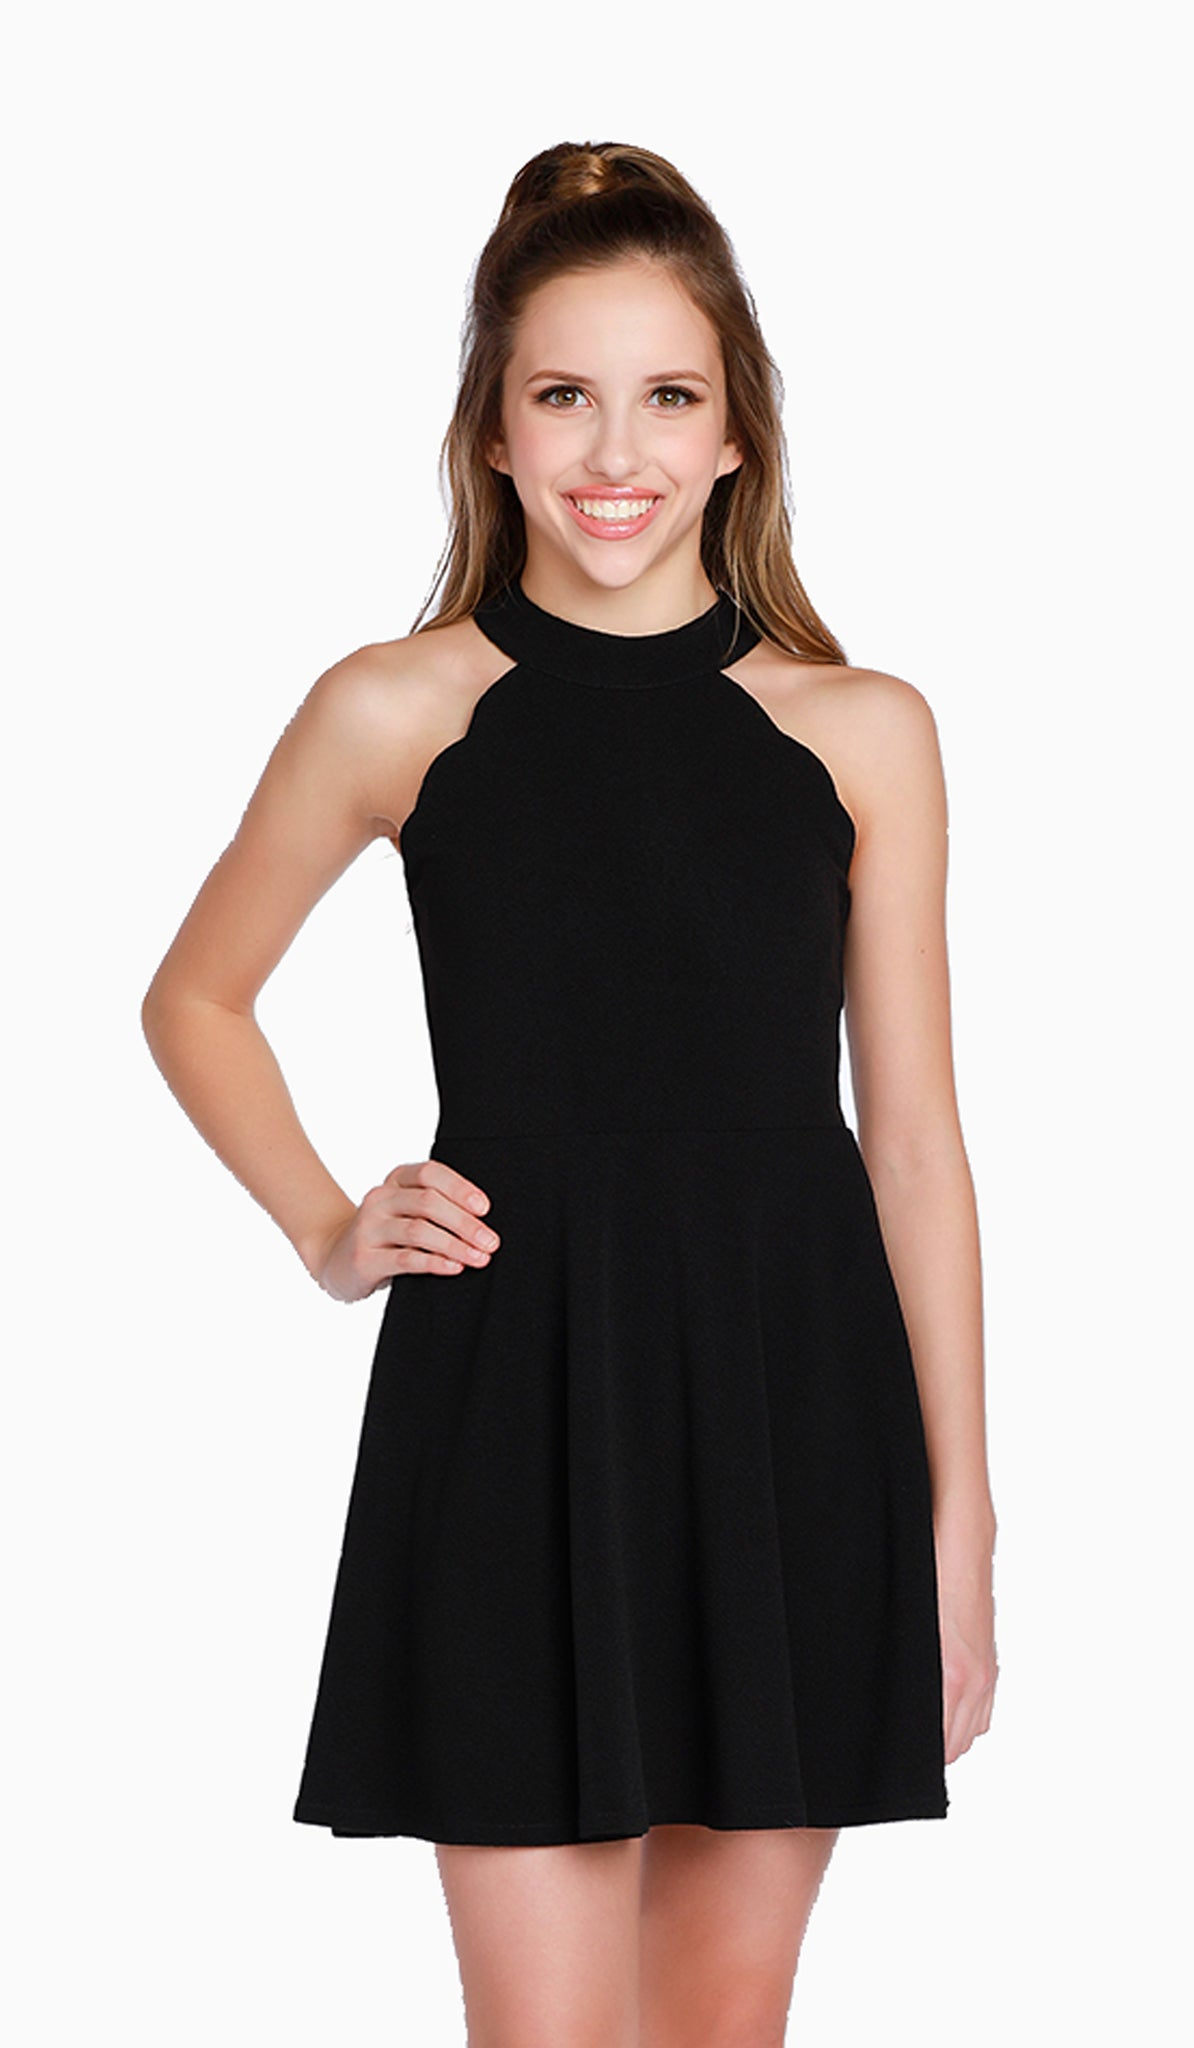 THE ISABELLA DRESS - Sallymiller.com - [variant title] - | Event & Party Dresses for Tween Girls & Juniors | Weddings Dresses, Bat Mitzvah Dresses, Sweet Sixteen Dresses, Graduation Dresses, Birthday Party Dresses, Bar Mitzvah Dresses, Cotillion Dresses